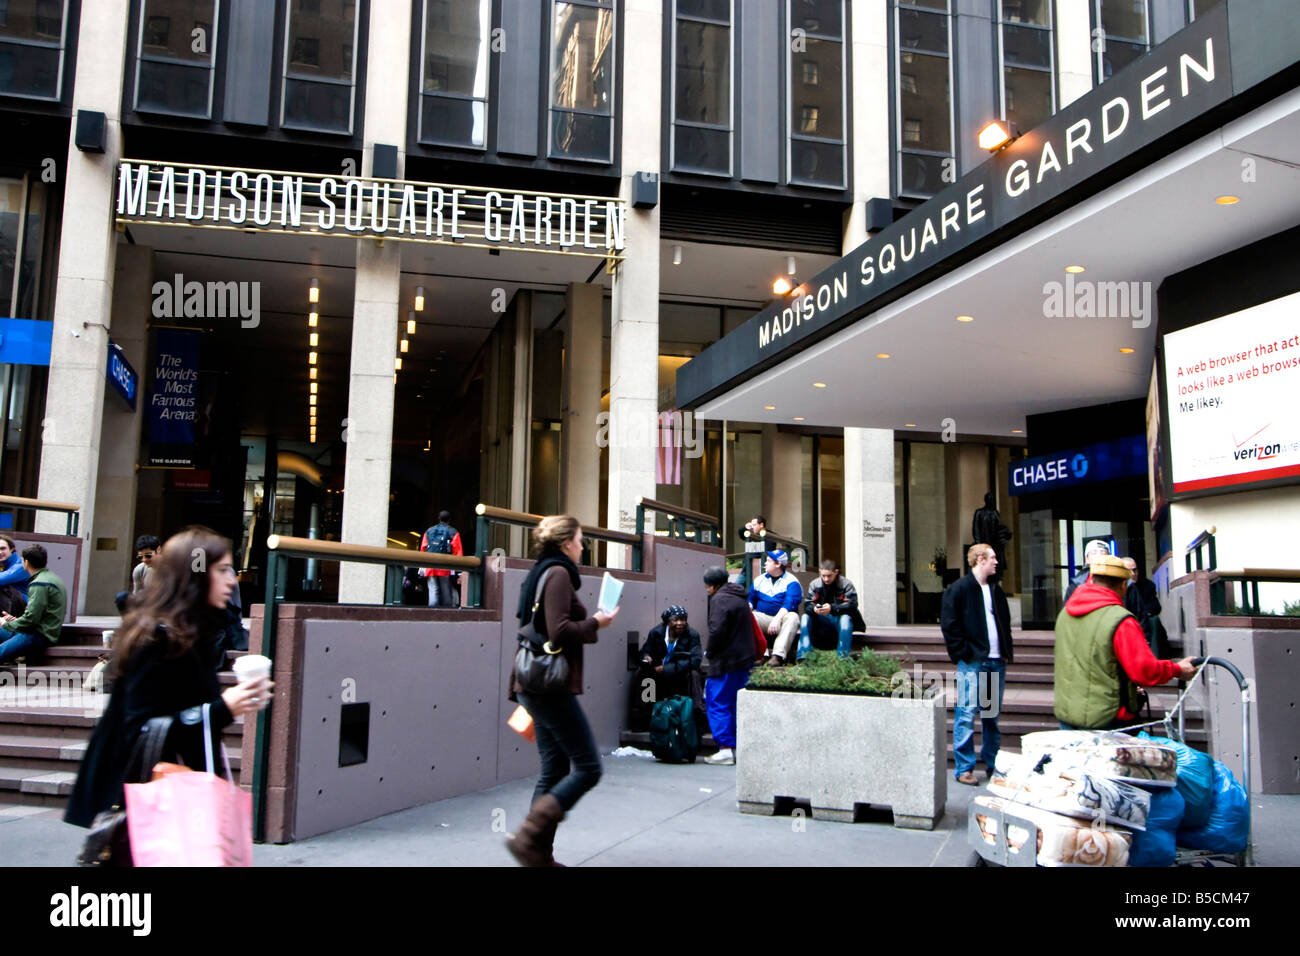 Madison Square Garden Stock Photos Madison Square Garden Stock Images Alamy